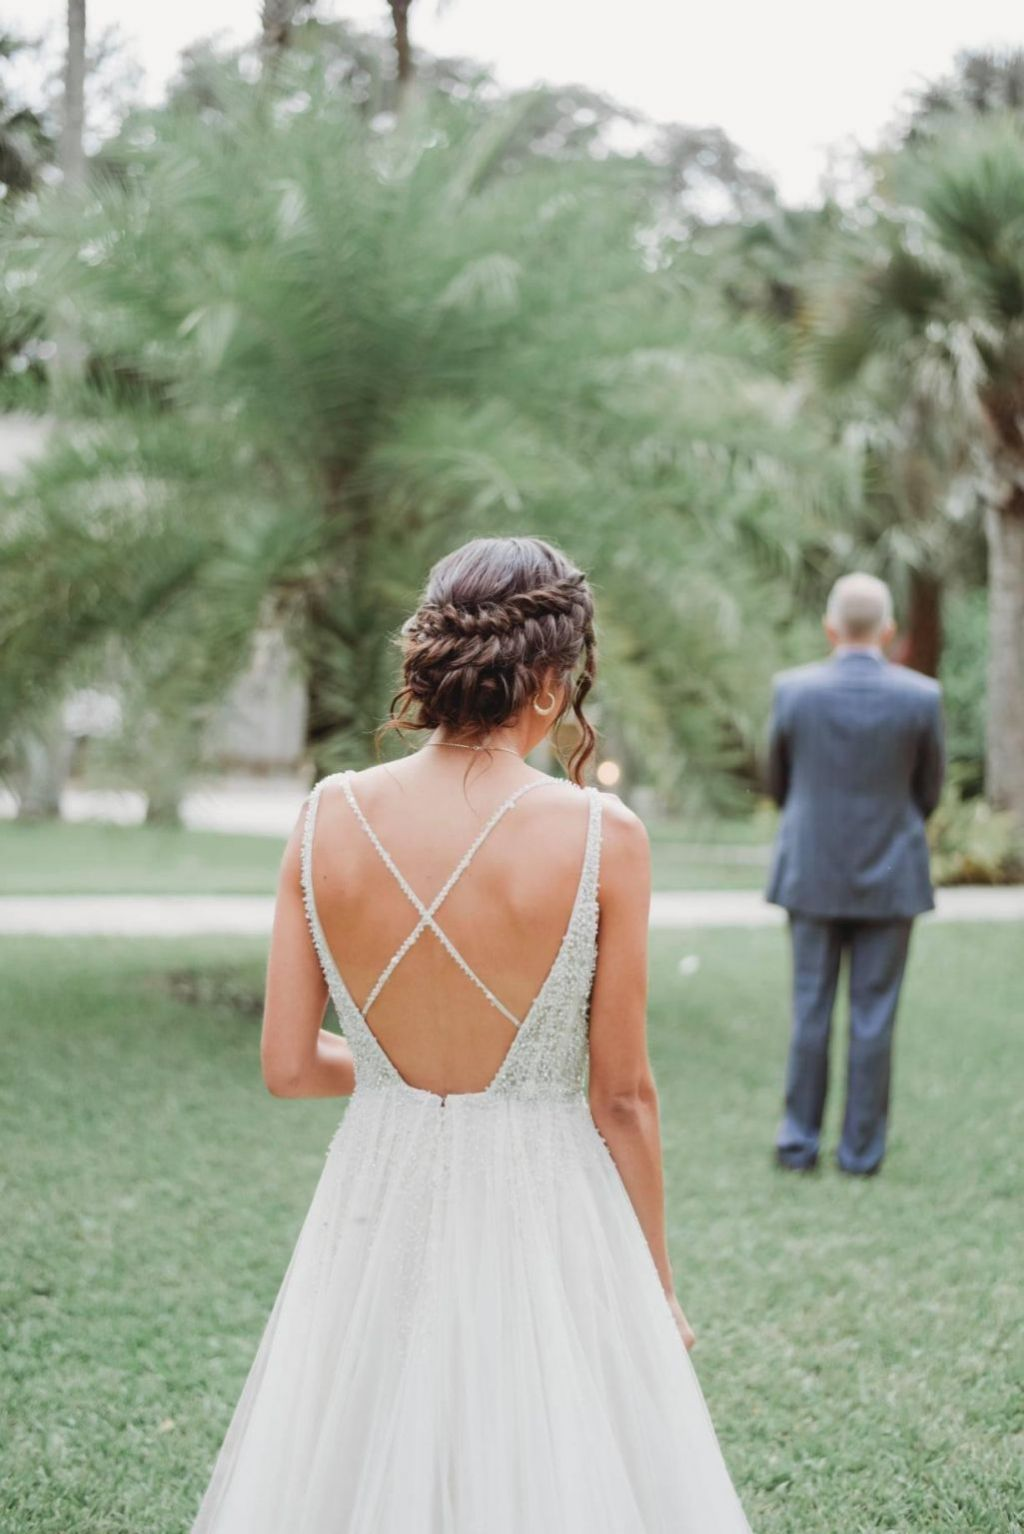 bride wearing Glamorous a-line wedding dress with criss-cross beaded back straps